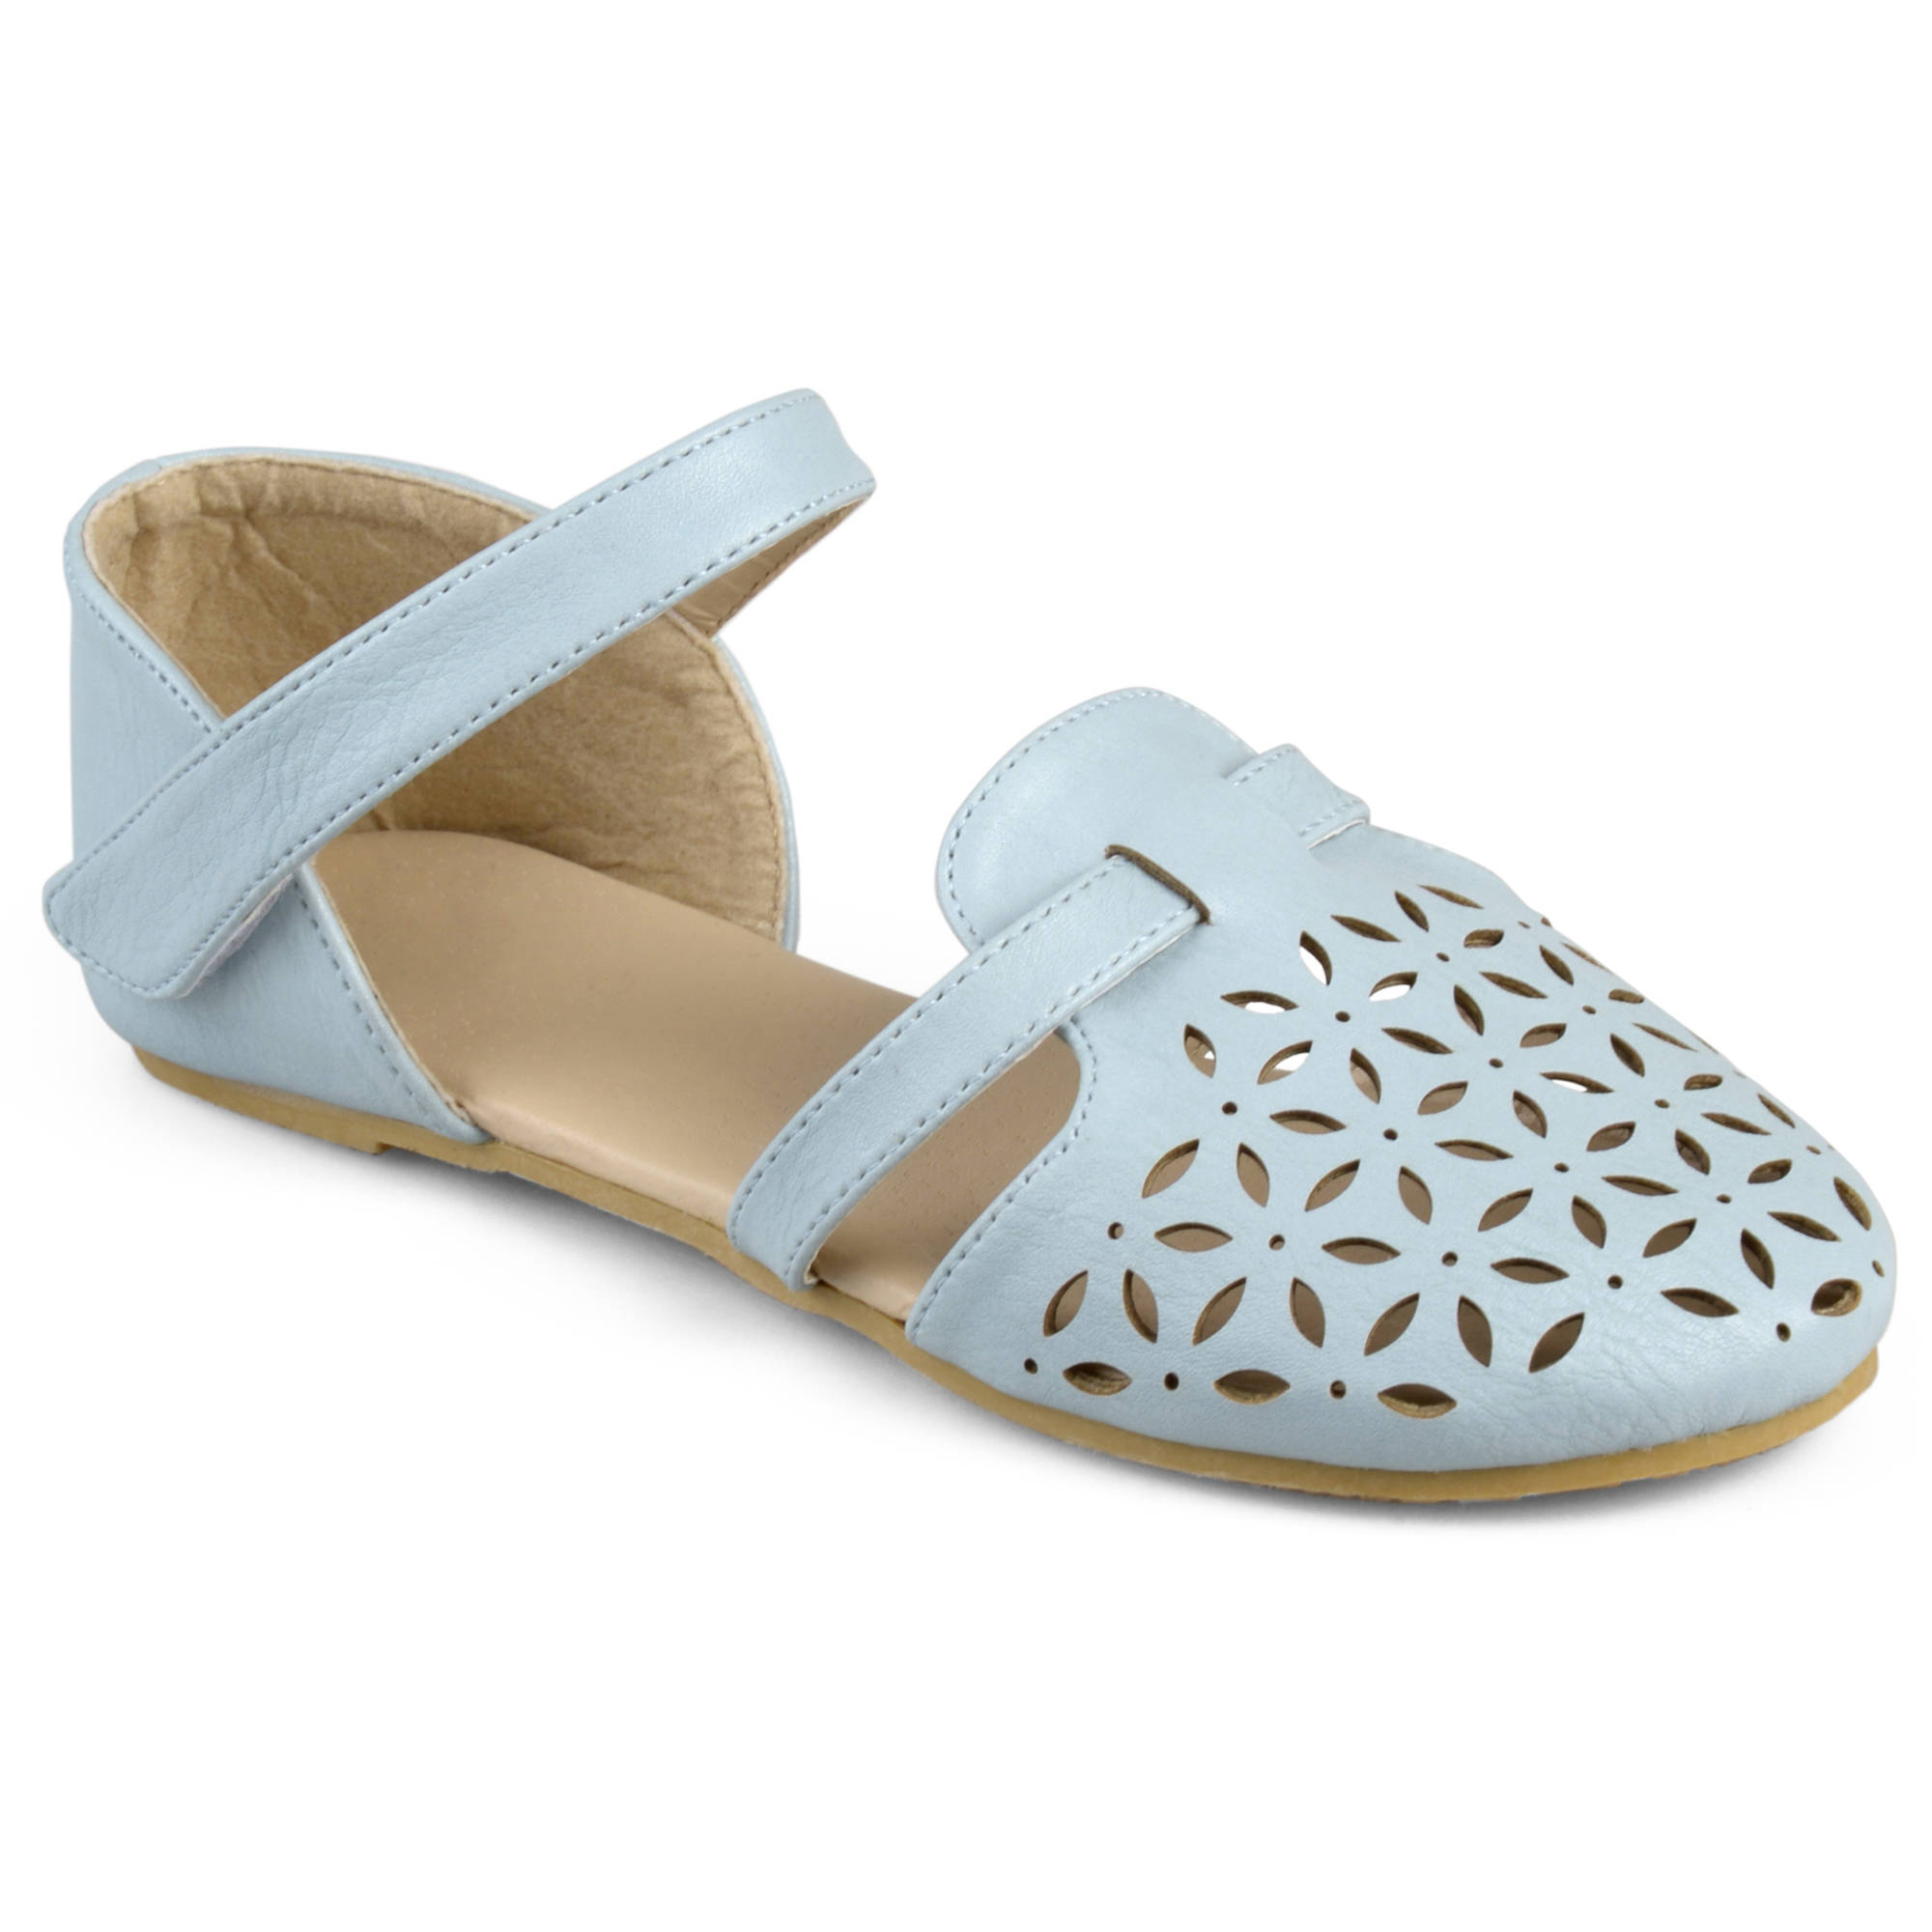 Brinley Kids Little Girl Faux Leather Multi Strap Laser Cut Flats